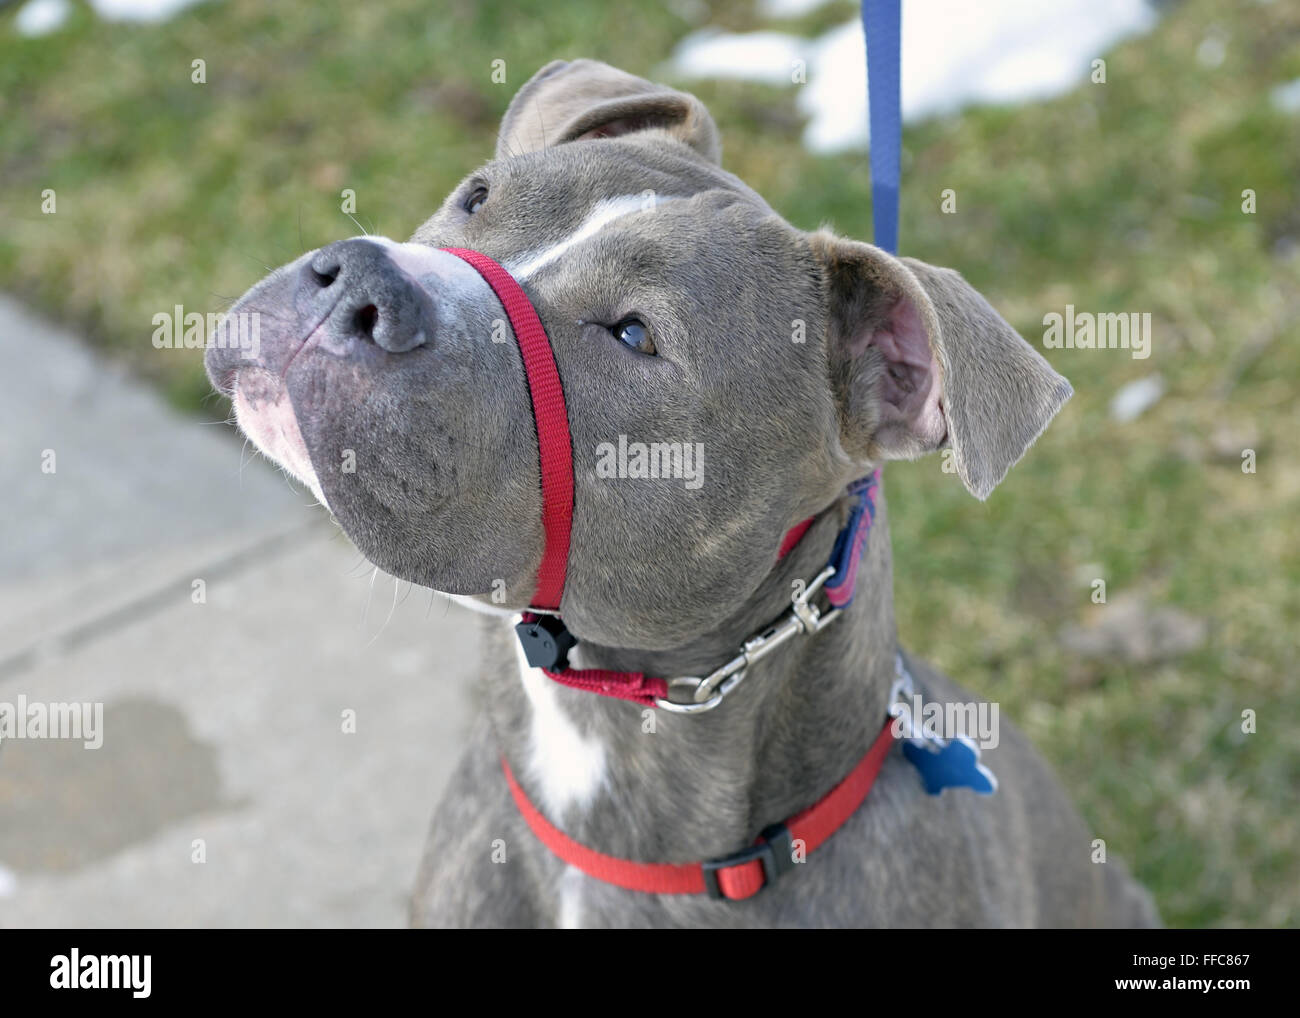 Wantagh, New York, USA. 7th Feb, 2016. Ford, a friendly gray pit mix who is available for adoption, wears a red - Stock Image